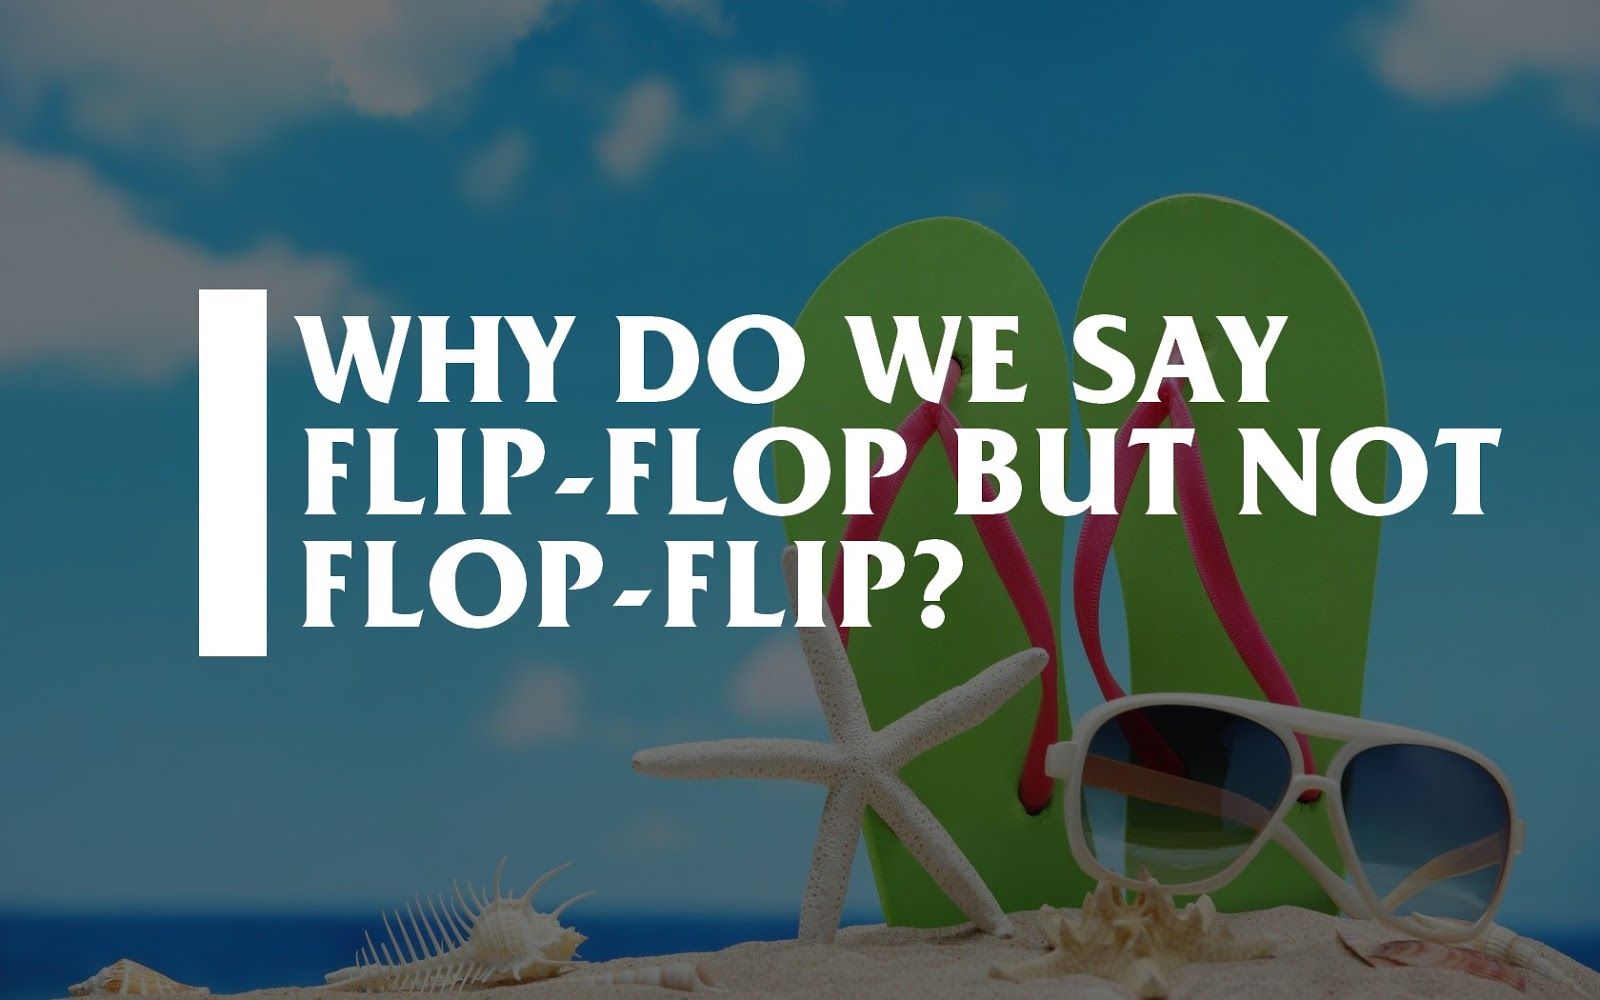 Here is why we say Tick Tock, Flip-Flop, and Hip Hop, But not Tock Tick, Flop-Flip, or Hop Hip.